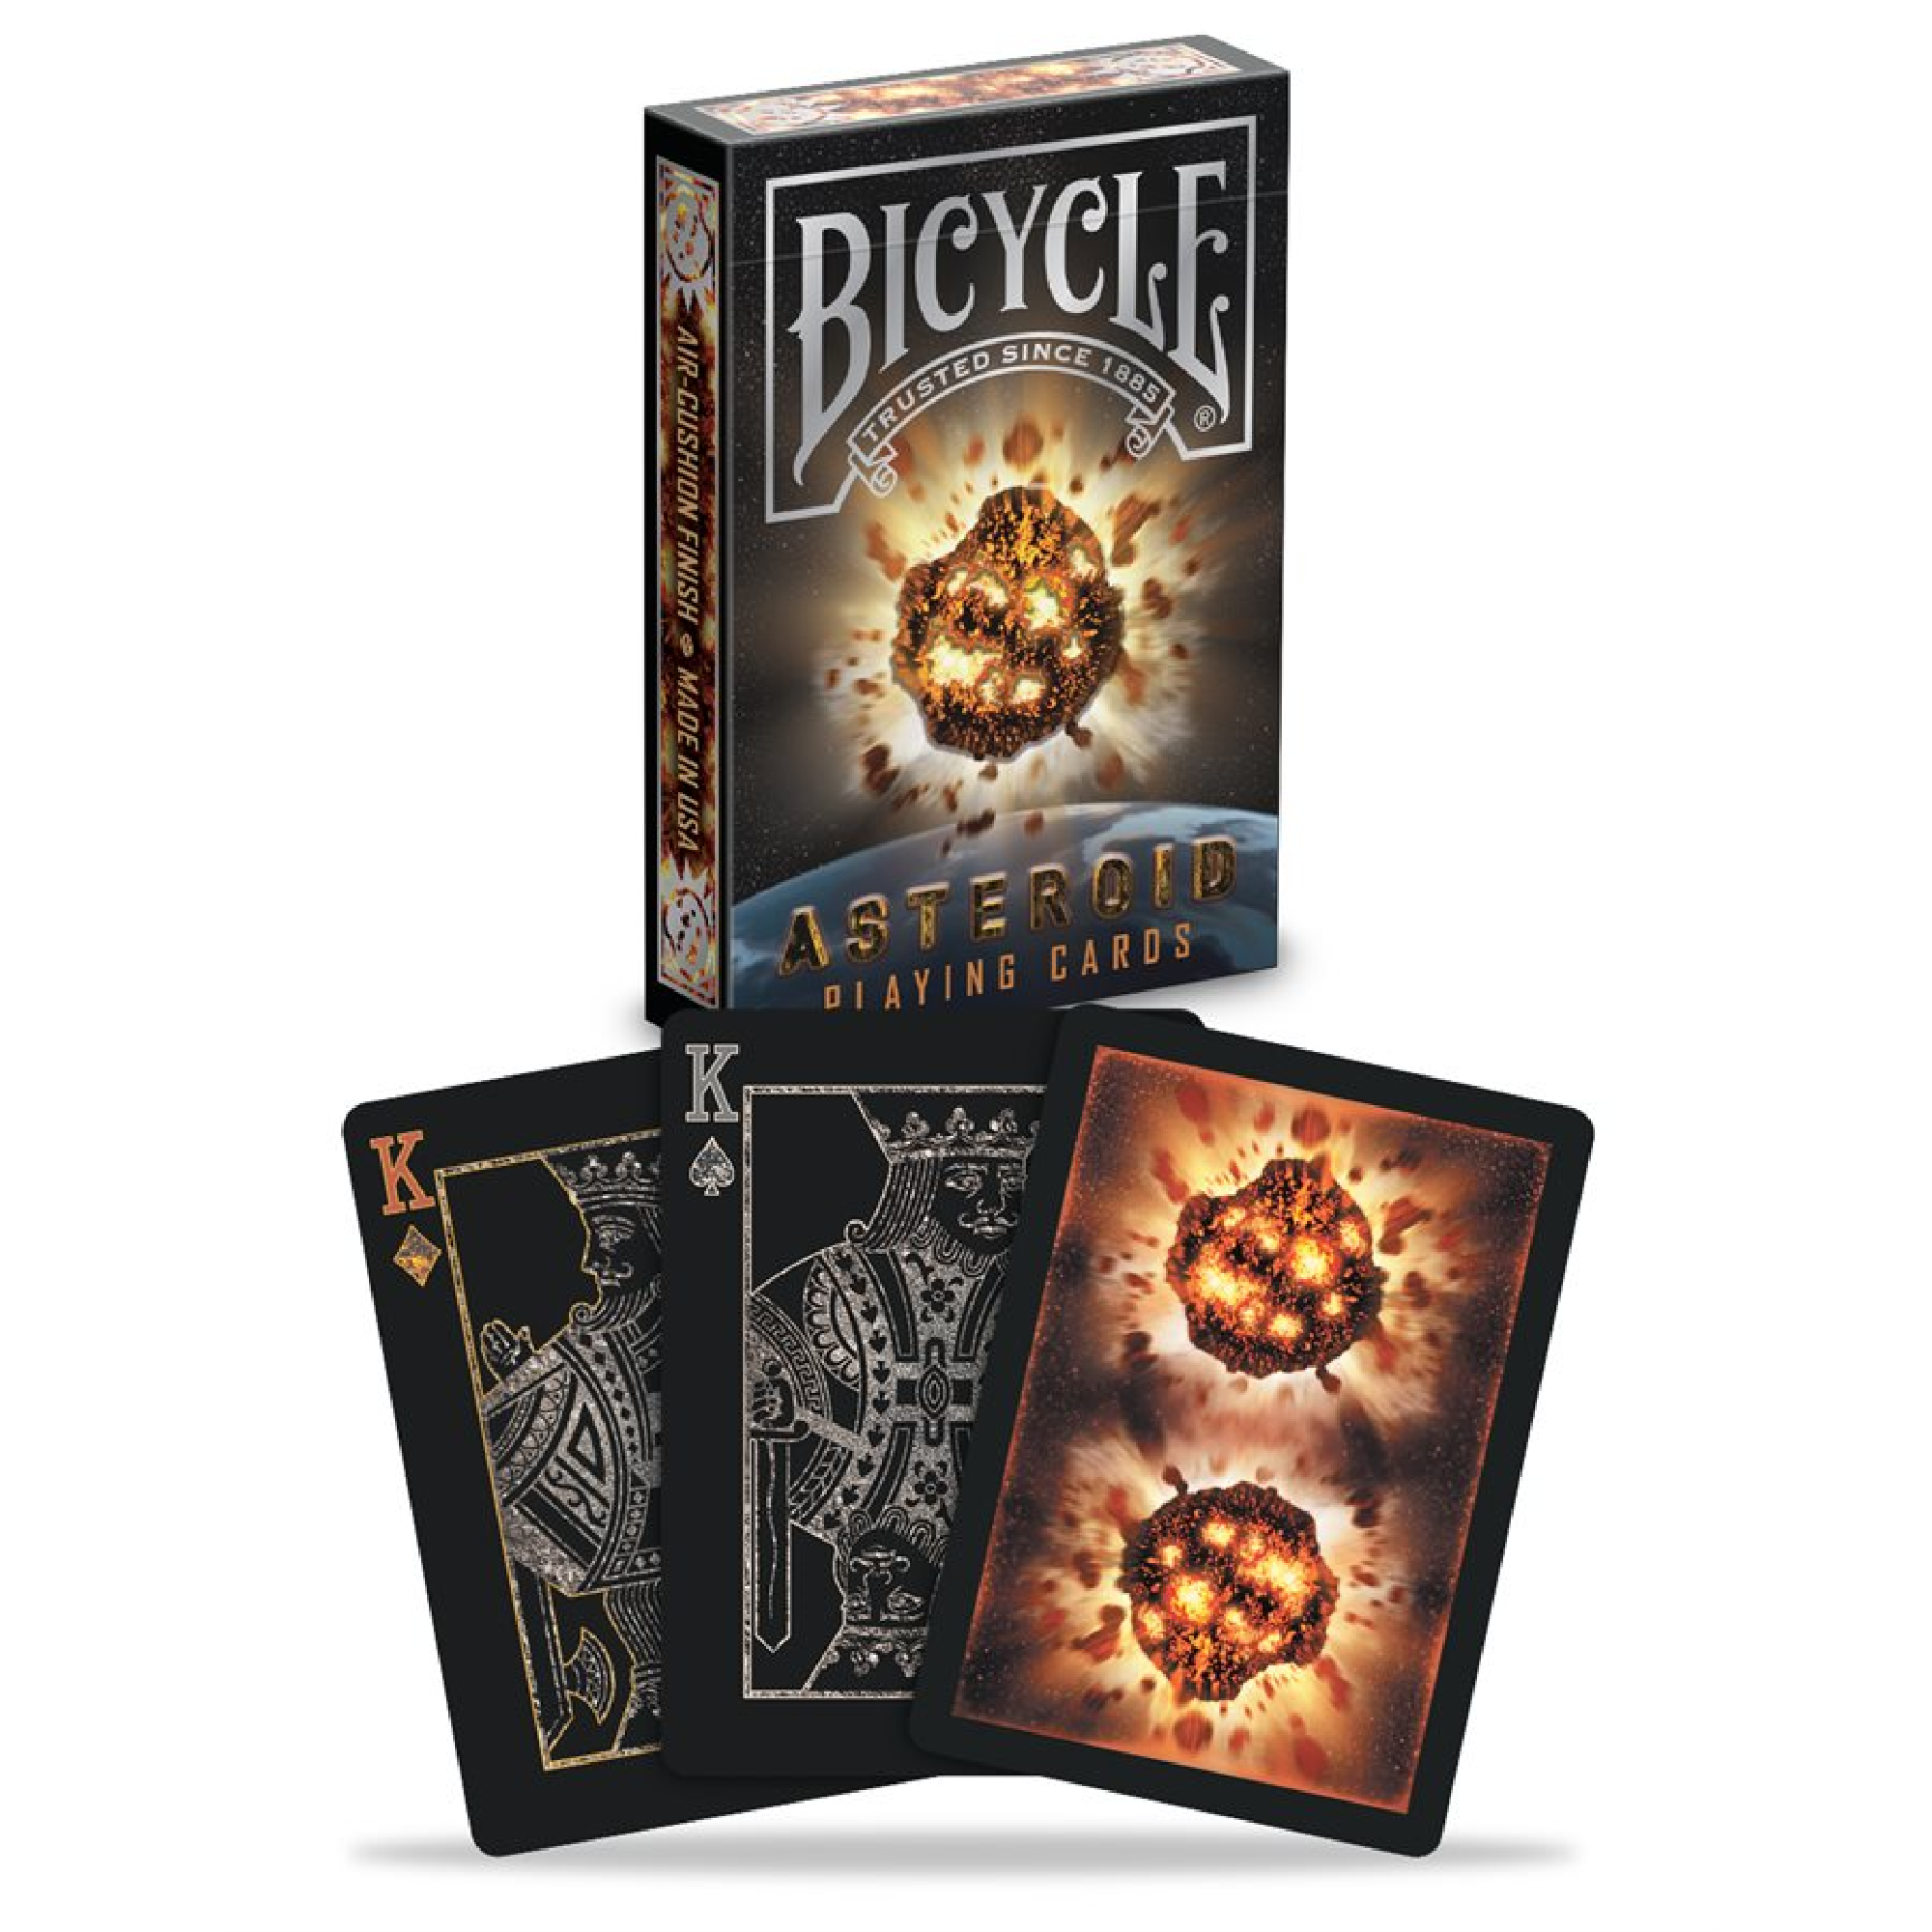 Bicycle Bicycle Deck Asteroid